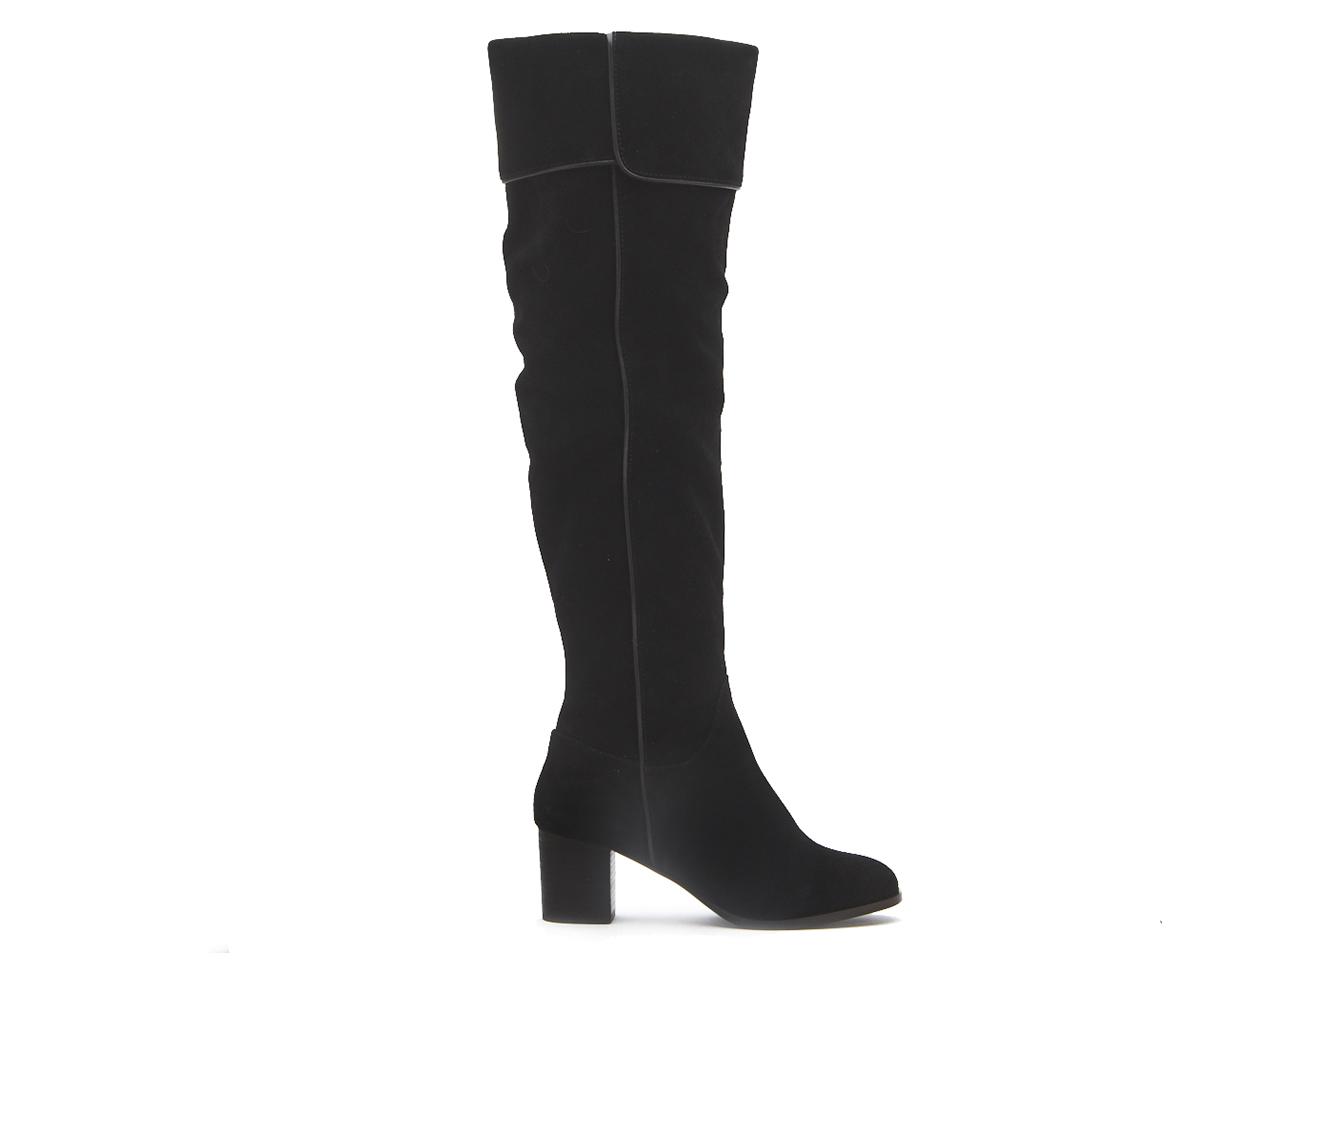 Coconuts Piper Women's Boots (Black - Suede)